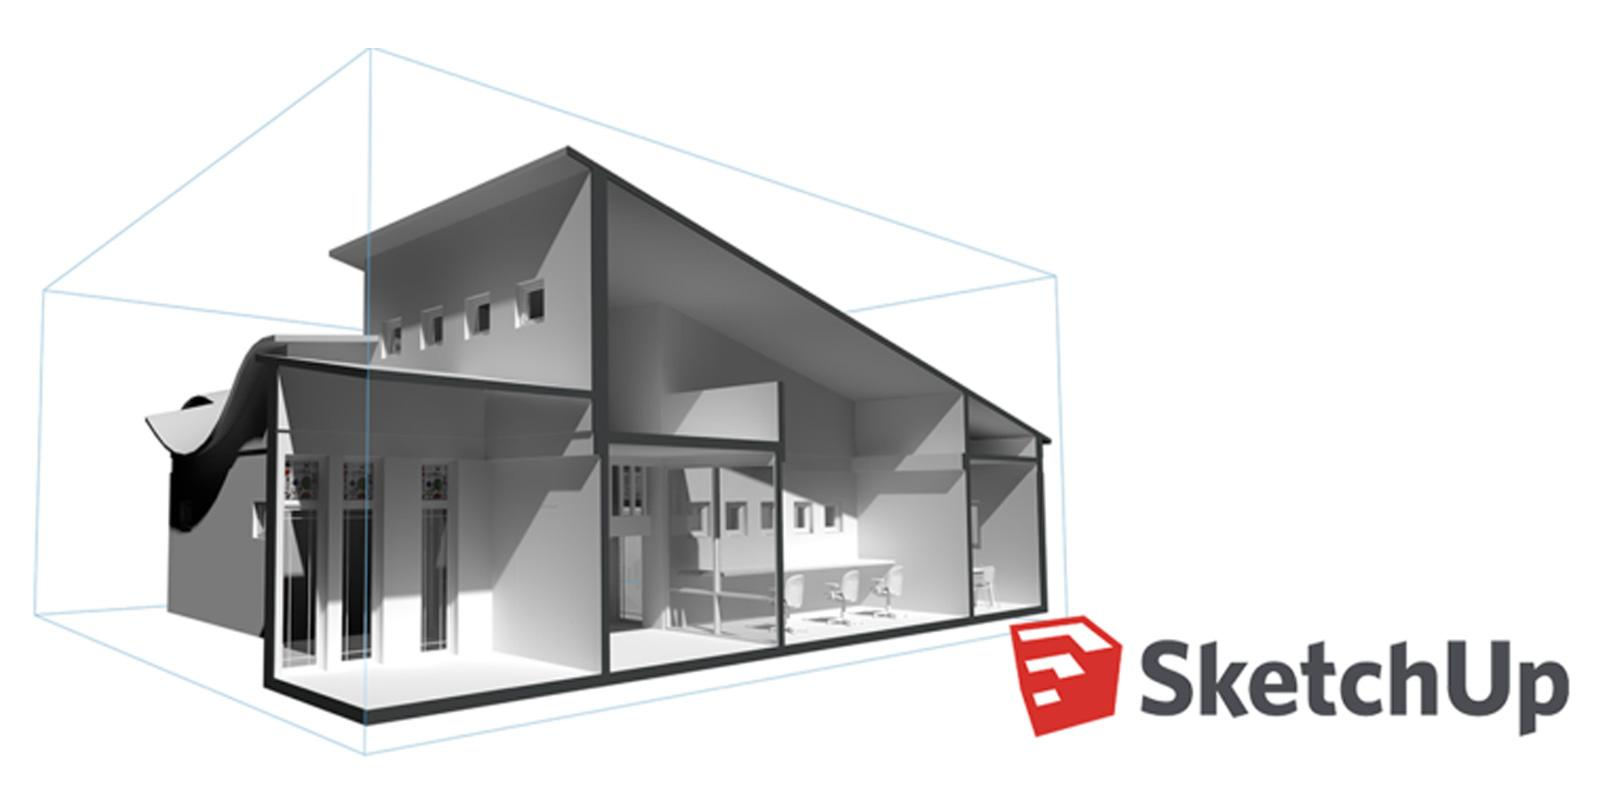 Sketchup Complemento